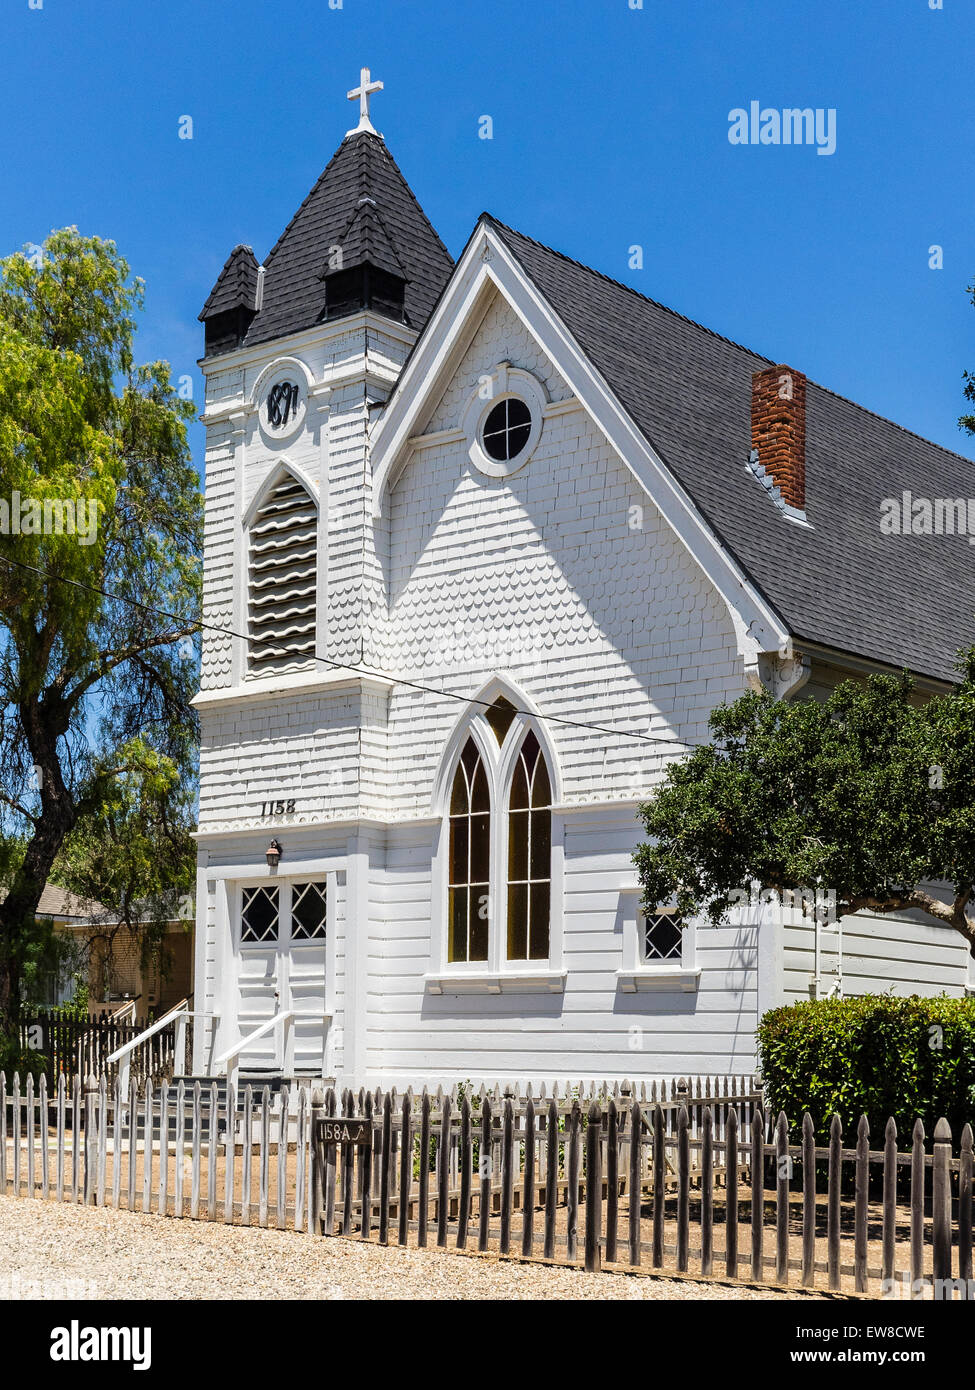 Front exterior view of the1897 white wooden Presbyterian Church in Santa Ynez, California. - Stock Image